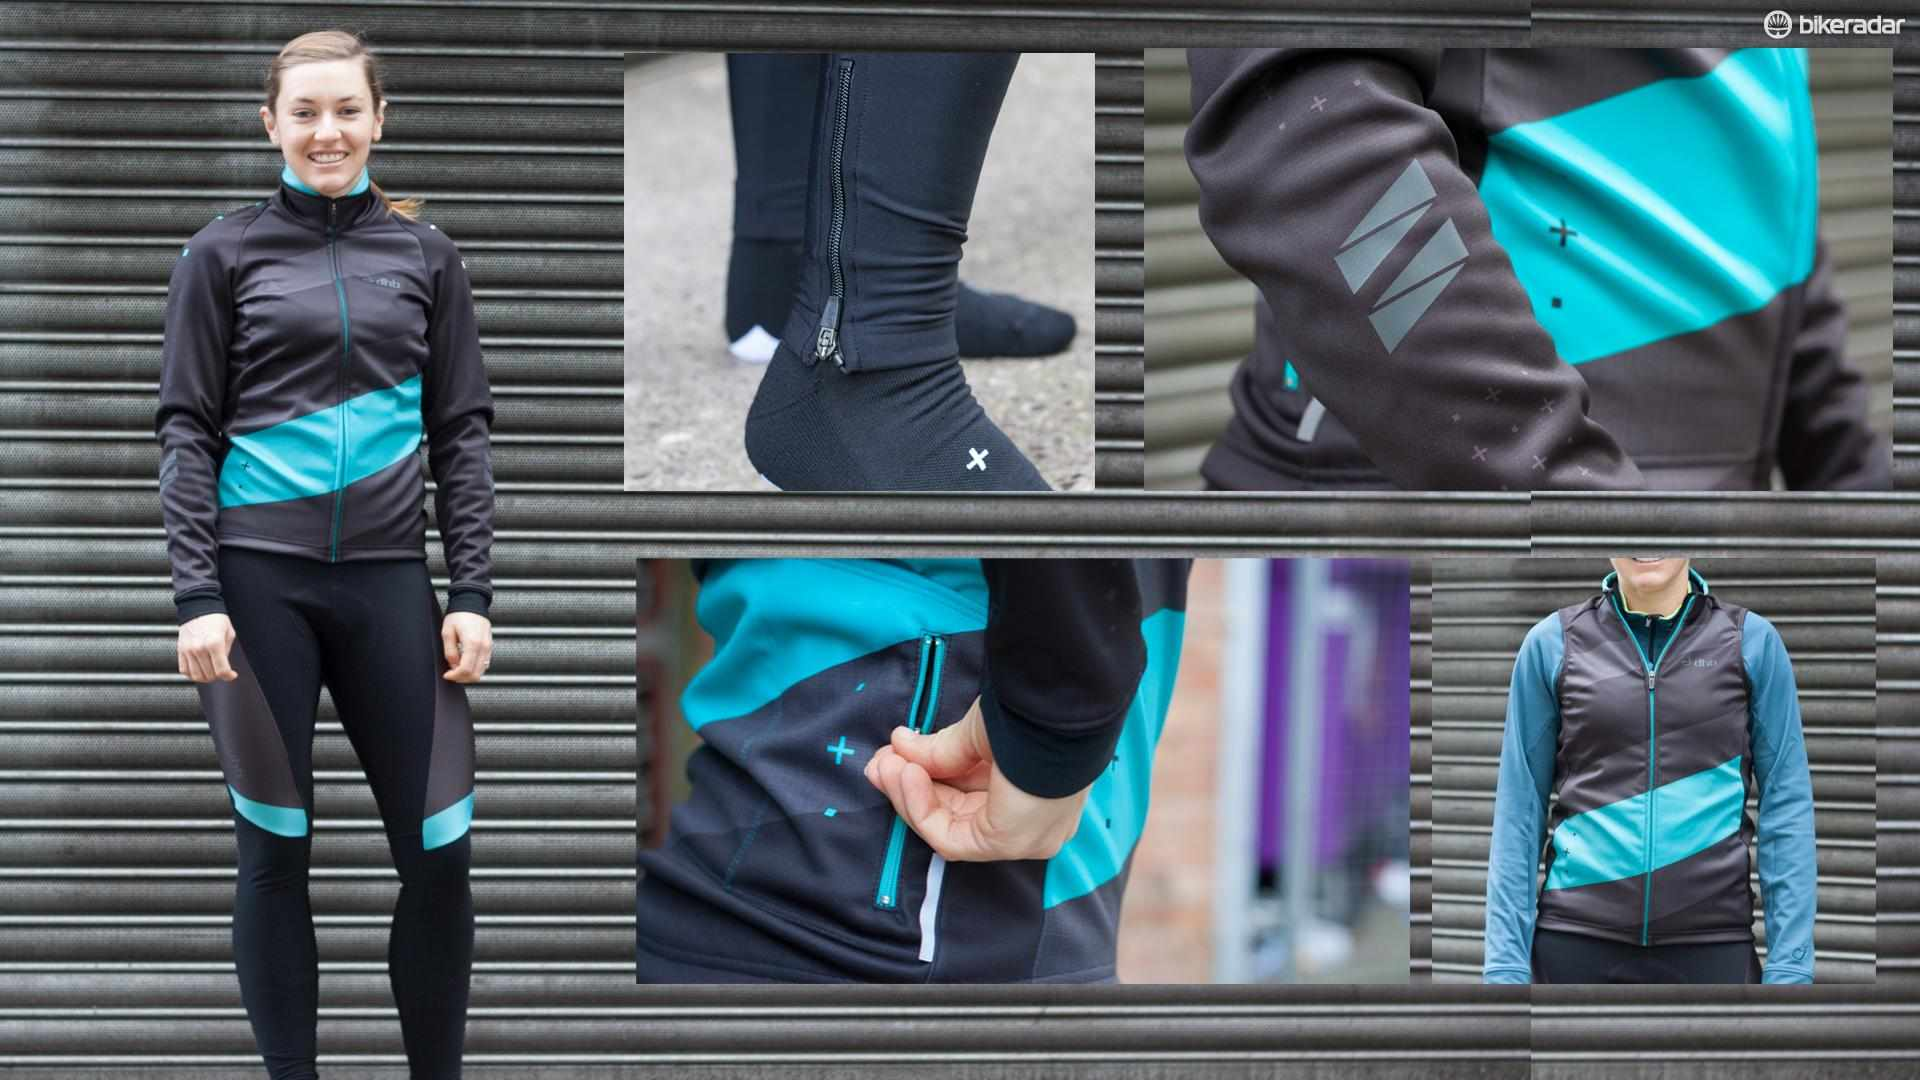 The new ASV Professional range from DHB incorporates bib tights, jerseys, a gilet and even socks